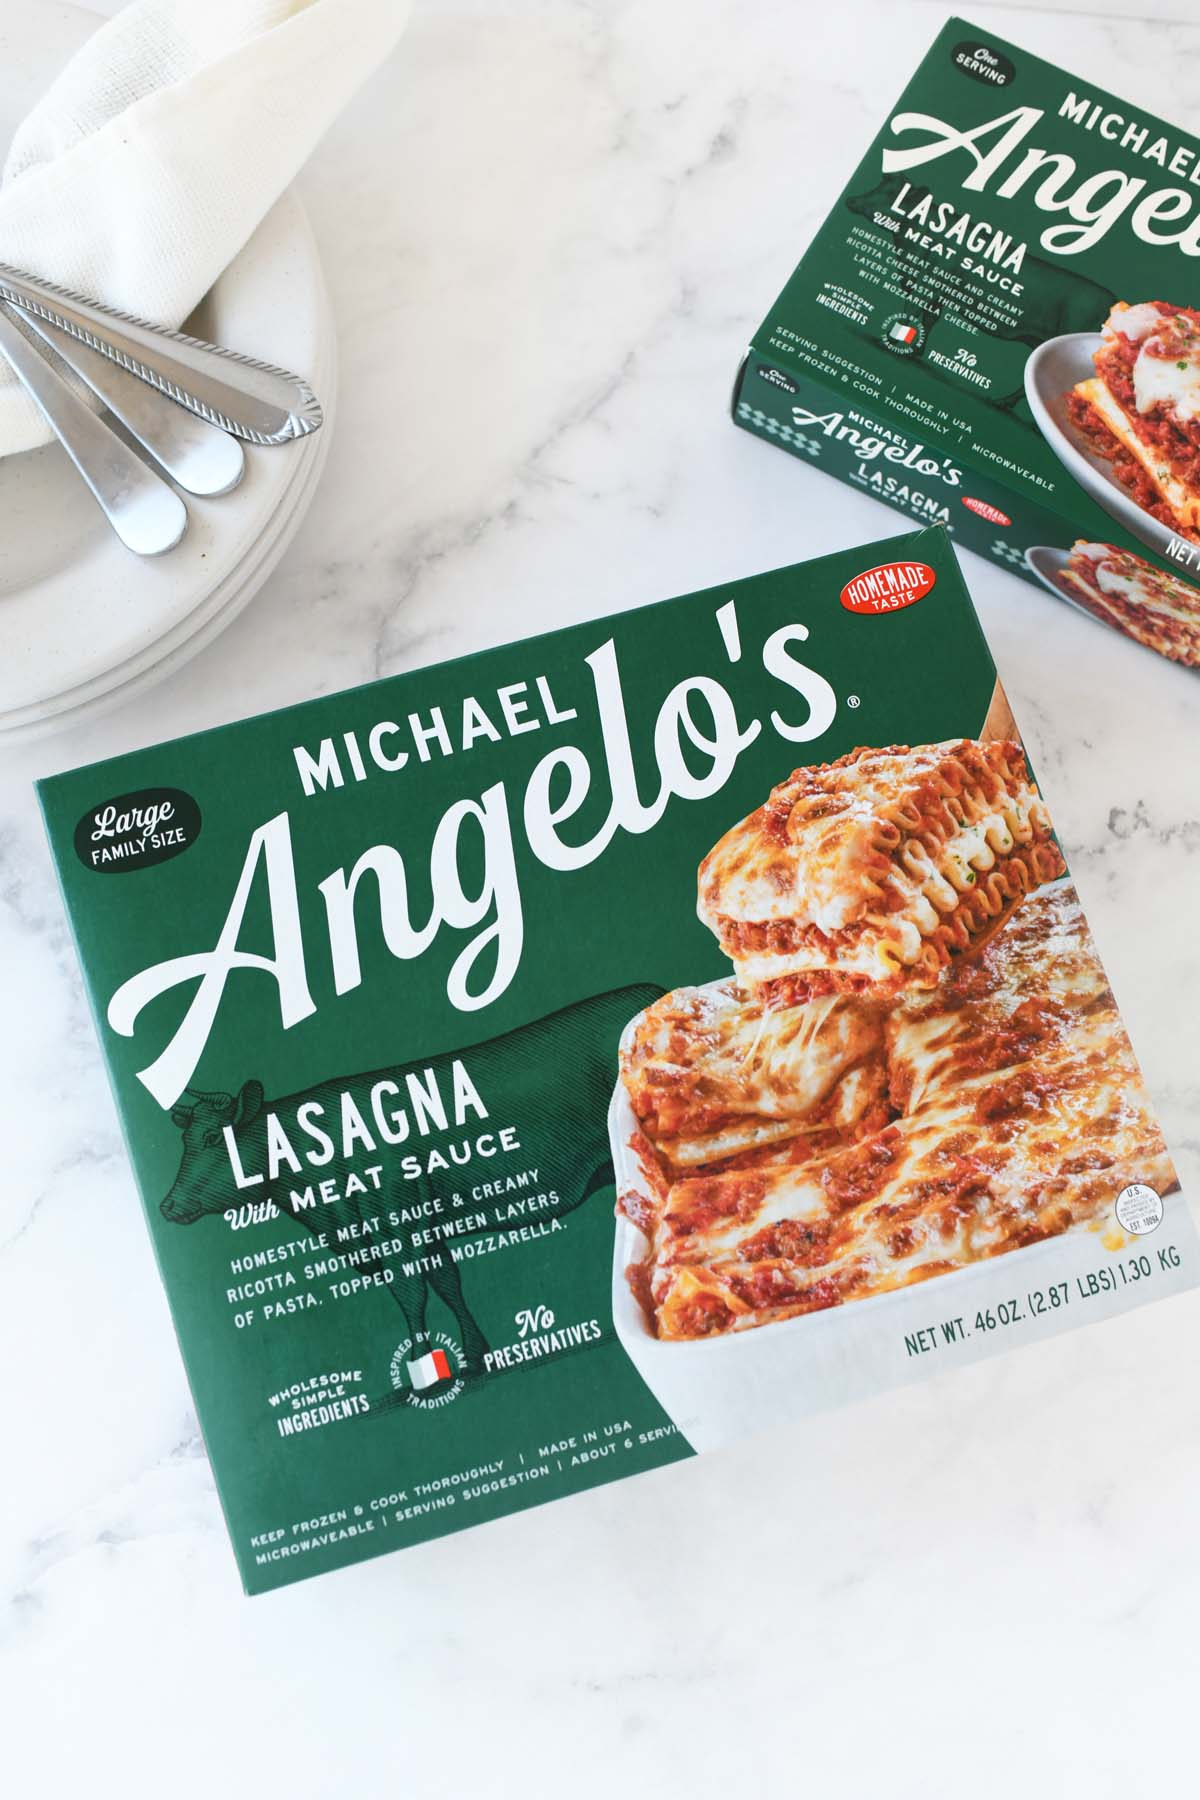 Michael Angelo's Large Family Size product box on a white marble table with plates and cutlery.